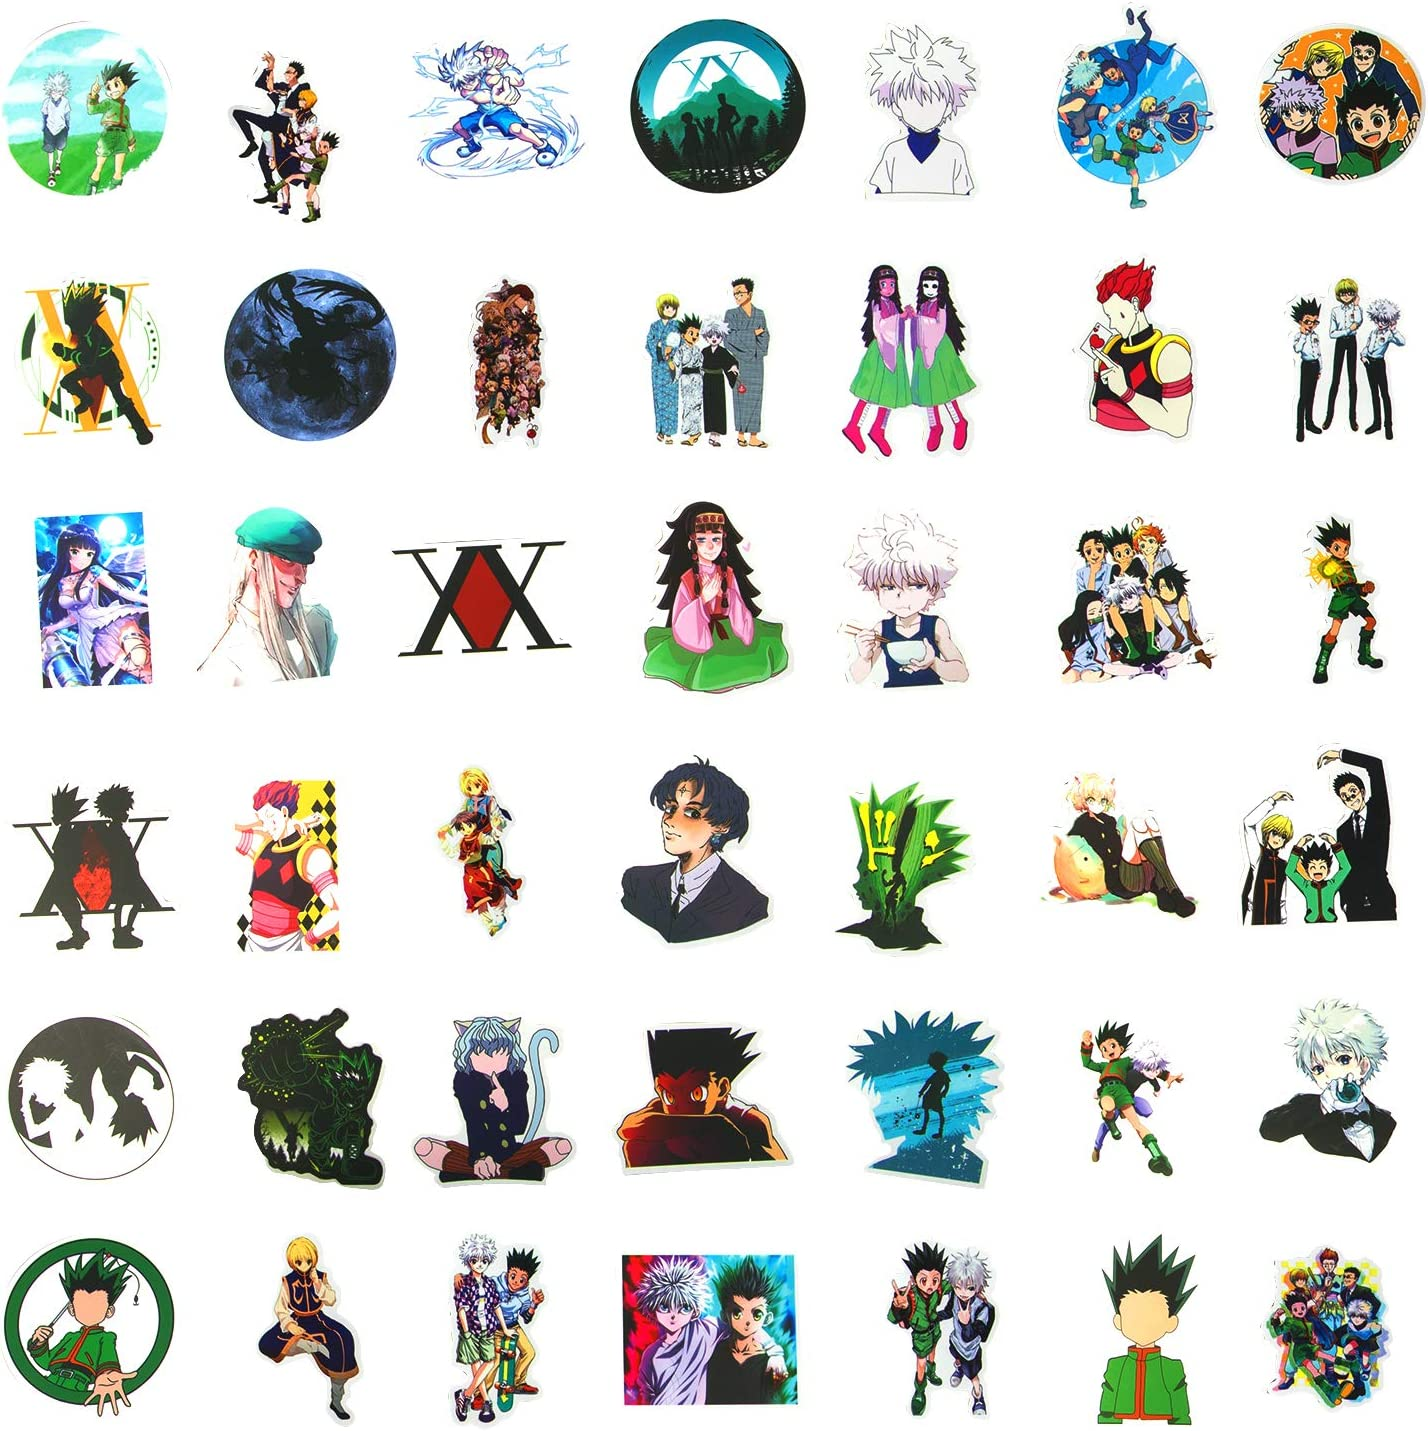 Hunter X Hunter Stickers 100pcs Japanese Anime Stickers Waterproof Vinyl Stickers for Teens Laptop Stickers Water Bottle Stickers Guitar Computer Skateboard Stickers Gifts for Anime Lovers